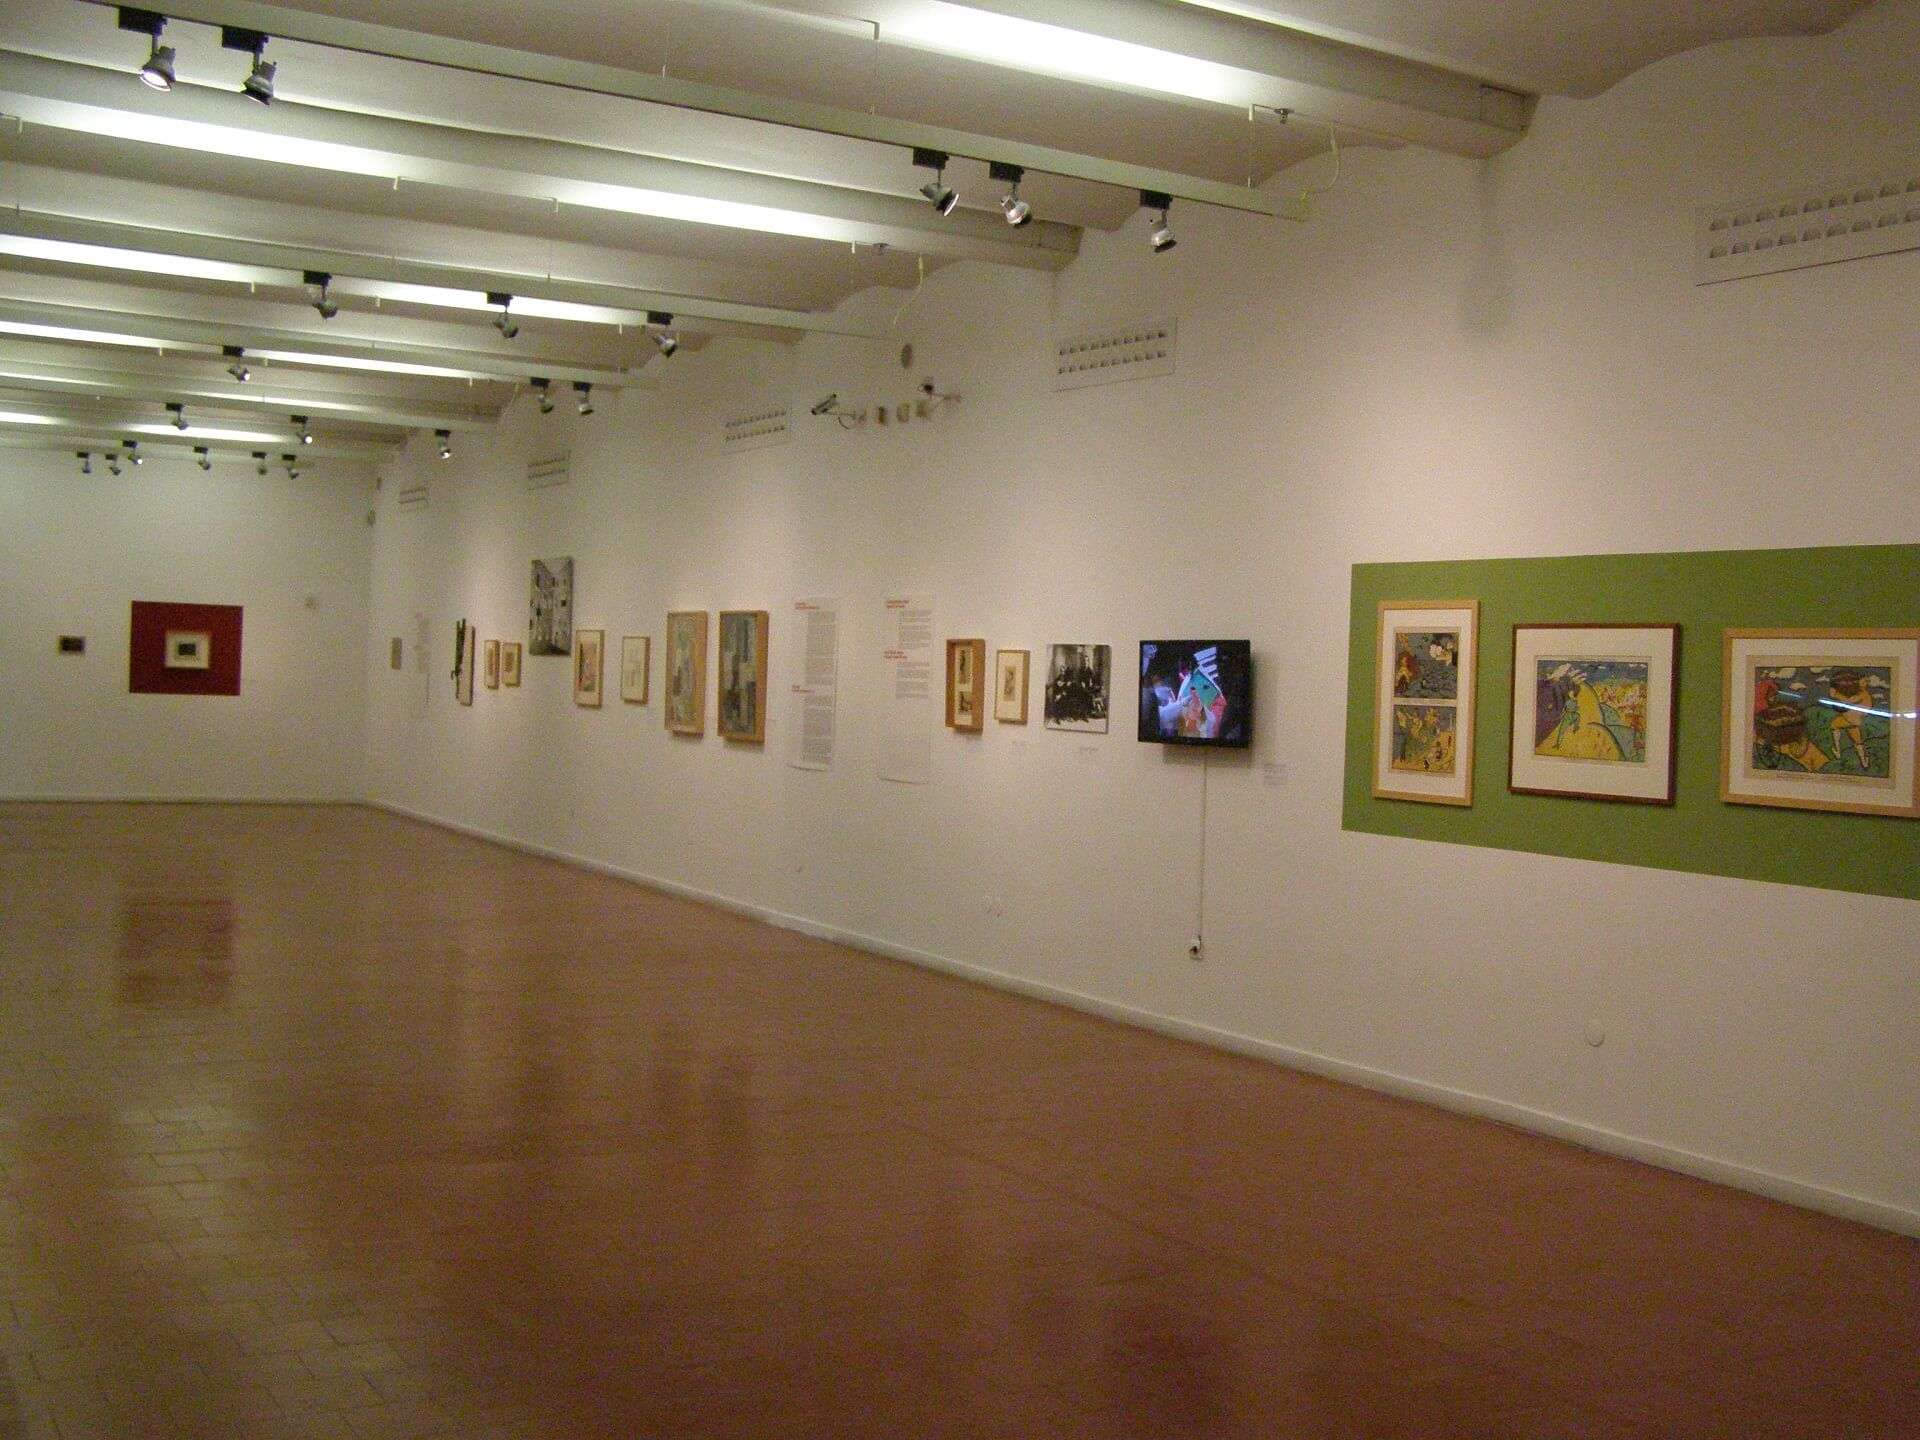 Thessaloniki museums:A trip to history and culture